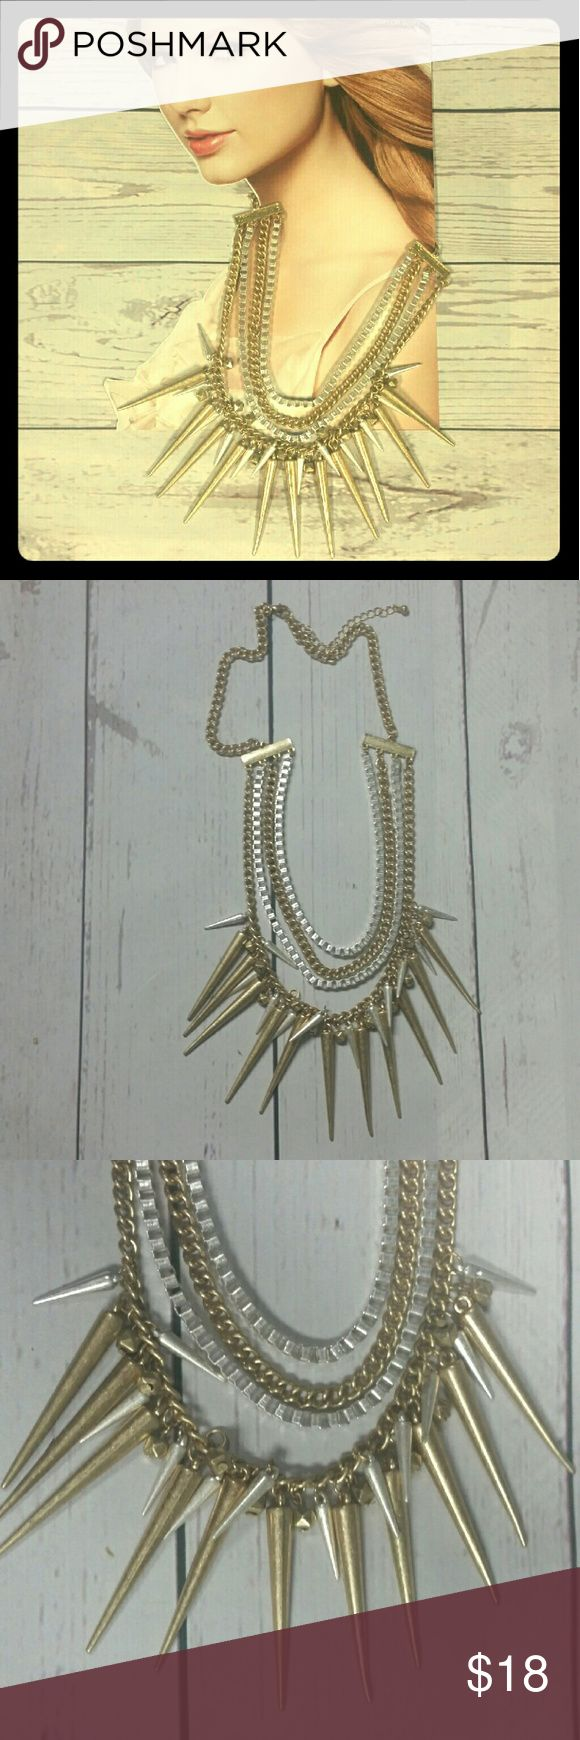 Spiked necklace!!! Give a touch of rock and roll to any outfit with this spiked necklace. Spiked gold and silver color necklace. Never worn. 🎉🎉🎉Bundle discount 20% off 3 or more items💰💰💰 Jewelry Necklaces